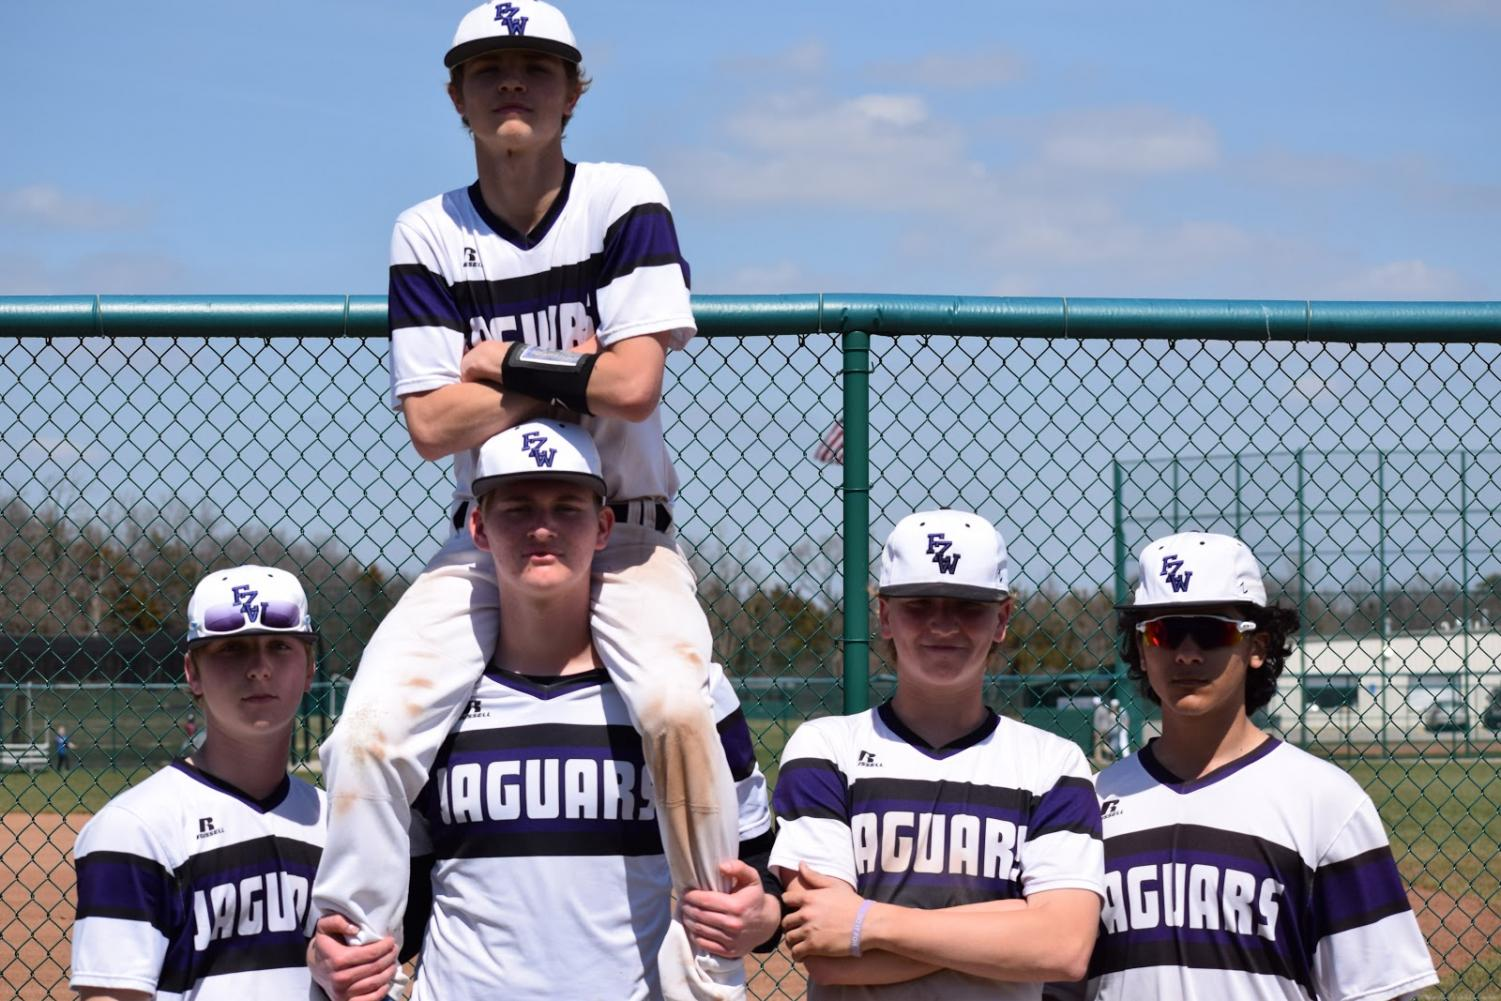 Sophomores Jacob Turner, Noah Hargraves, Tanner Perry, Jack Standley and Jericho Badwan pose for a picture.